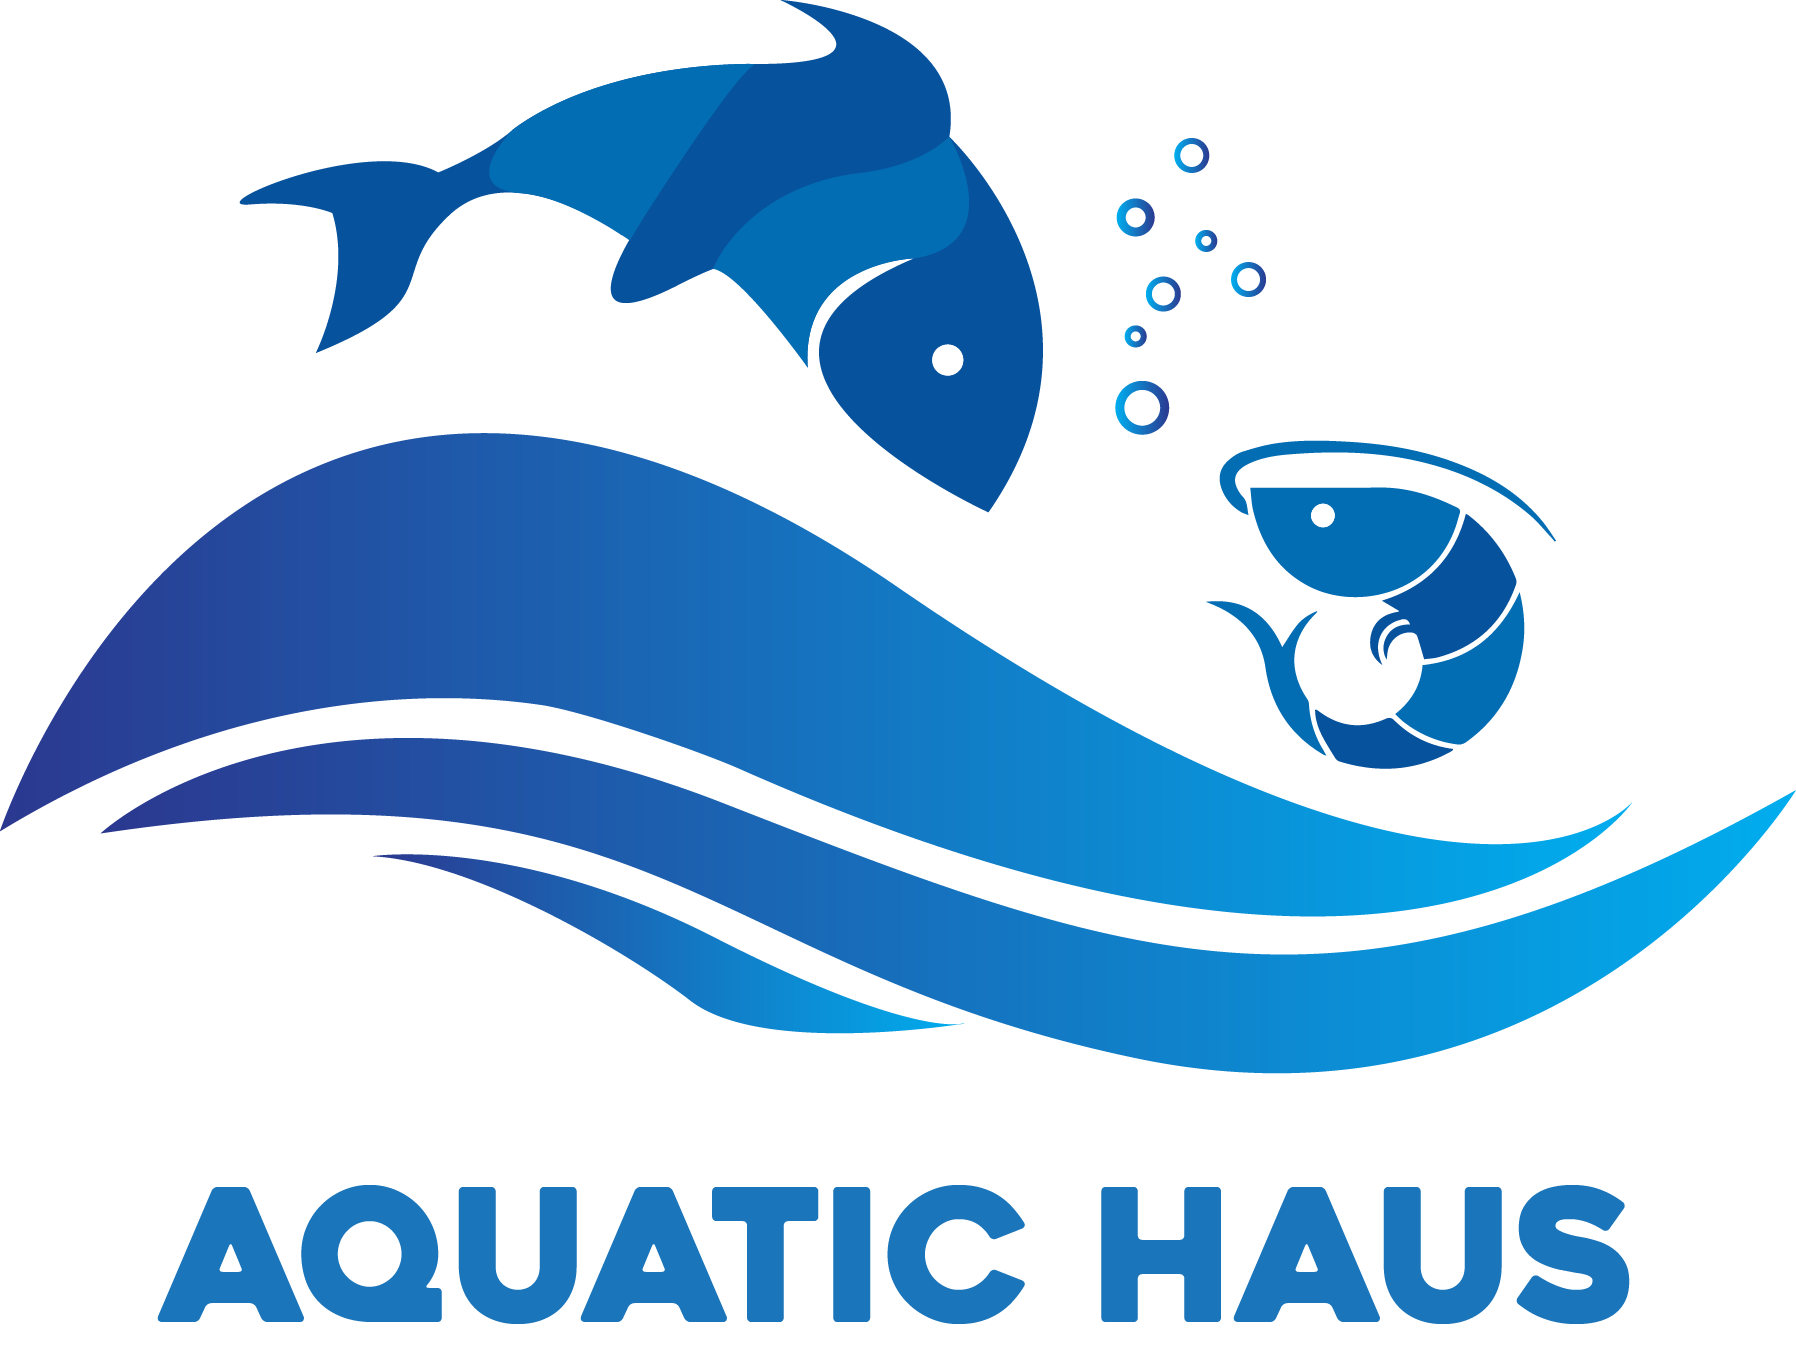 Aquatic Haus